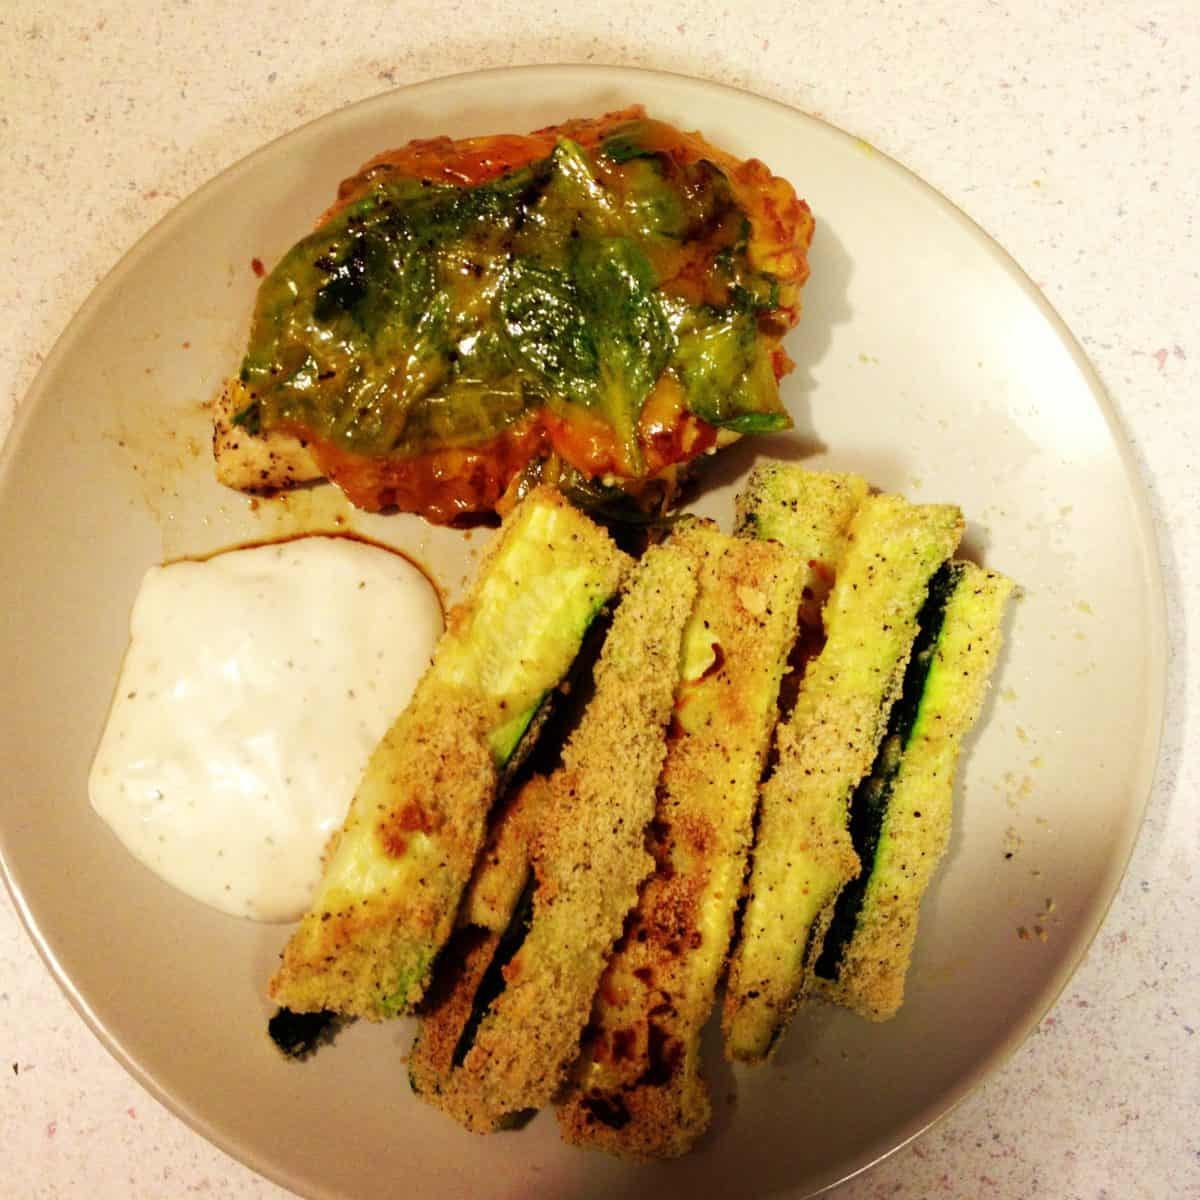 Spicy Salsa Chicken and Baked Zucchini Fries- by GFF recipe contributor, Brittney Long